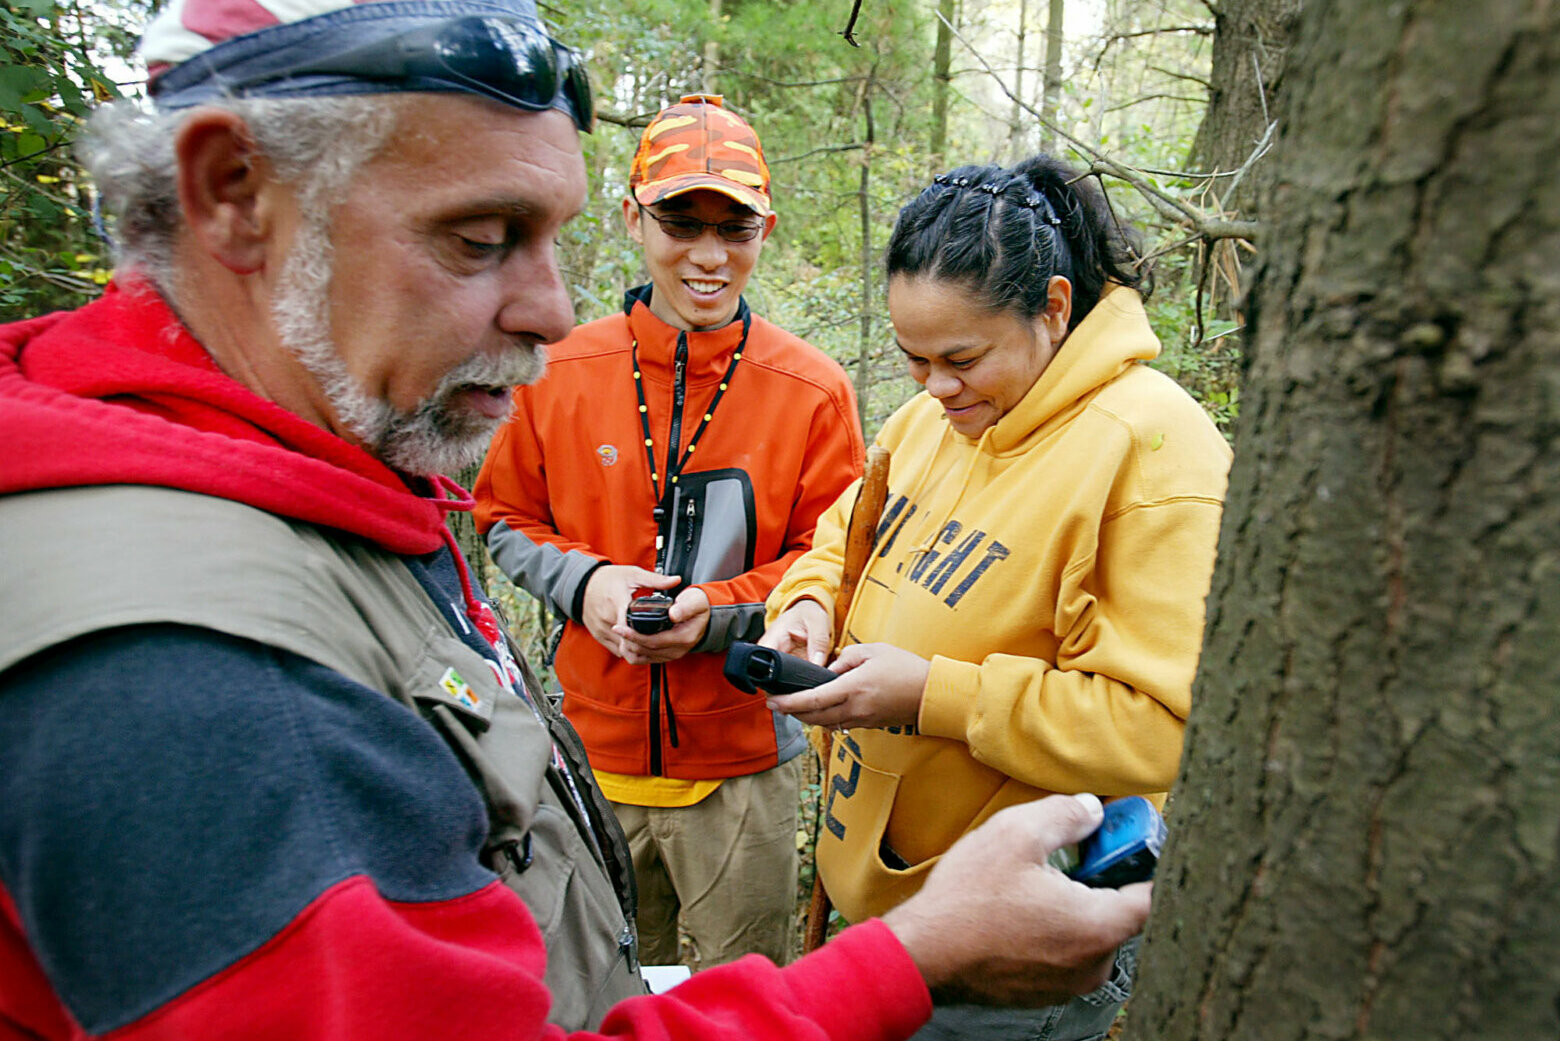 How to get started geocaching in DC area